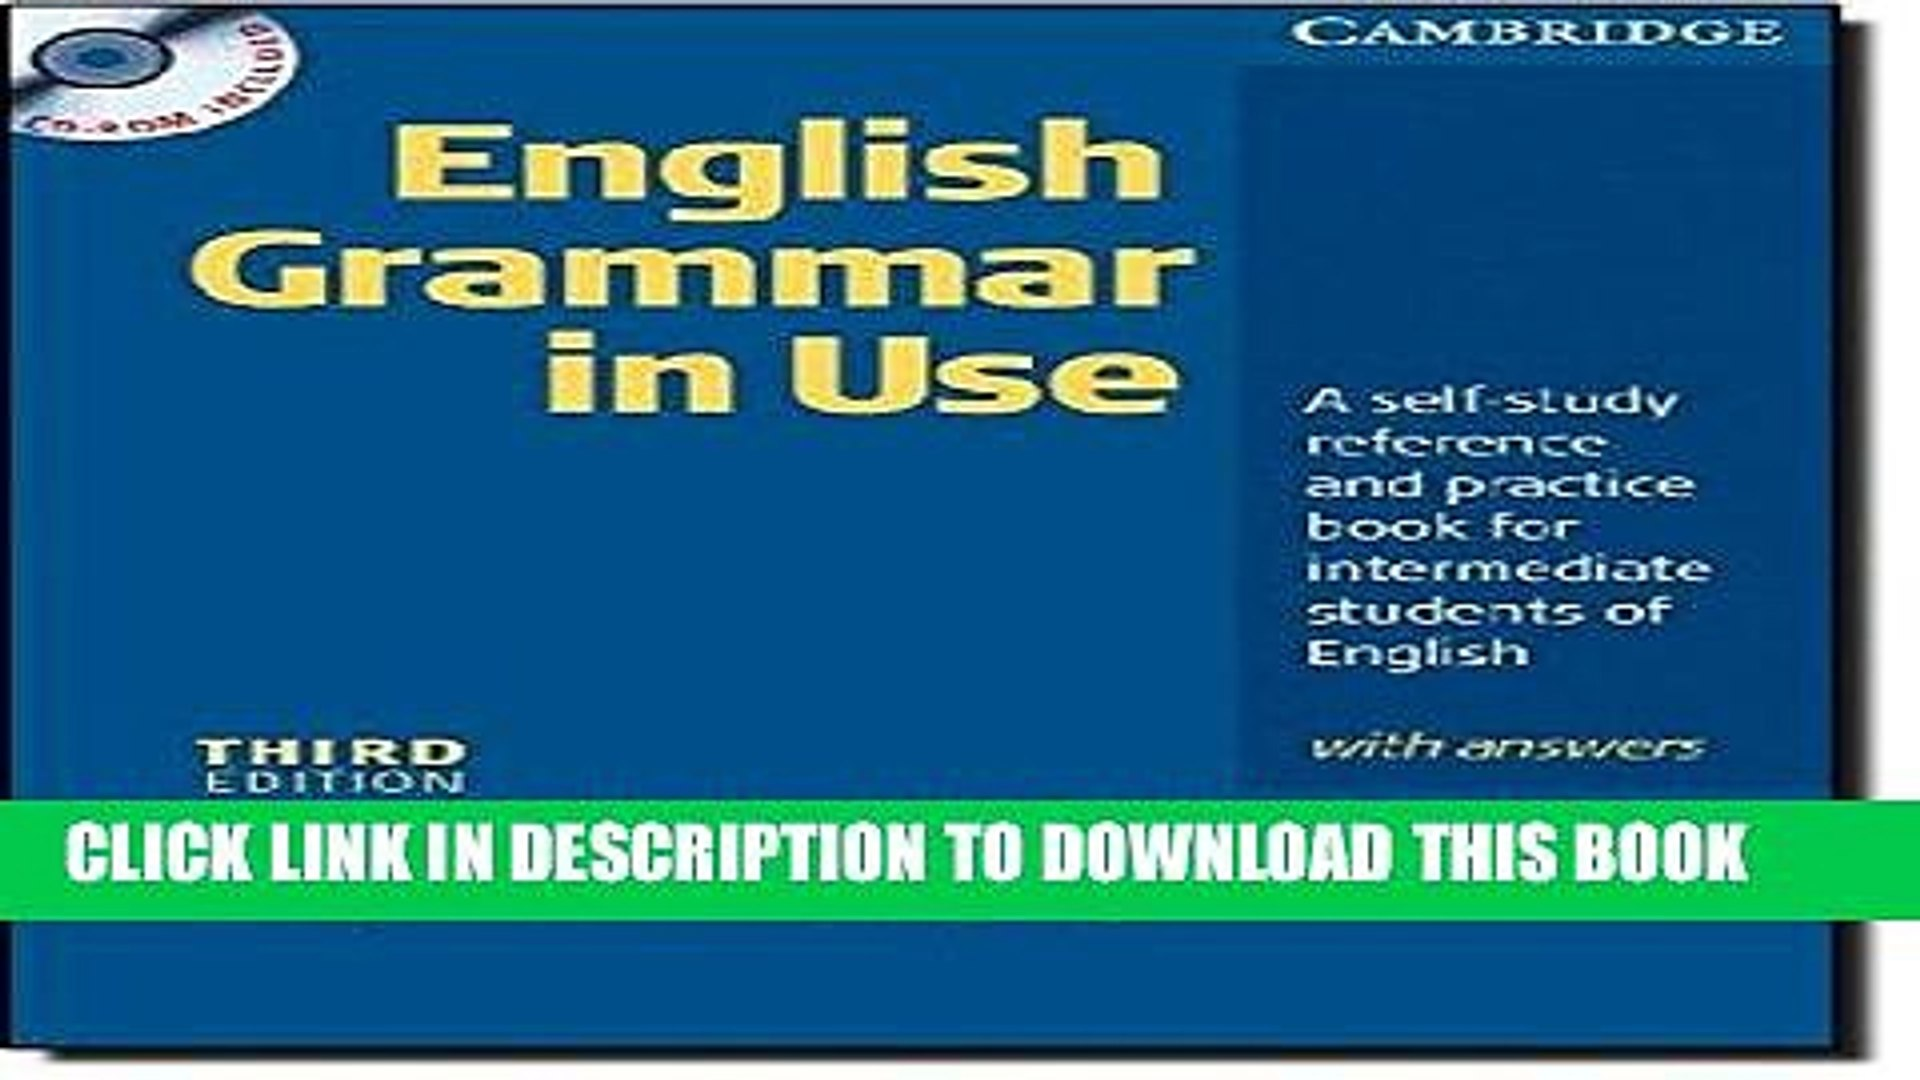 [PDF] English Grammar In Use with Answers and CD ROM: A Self-study  Reference and Practice Book for